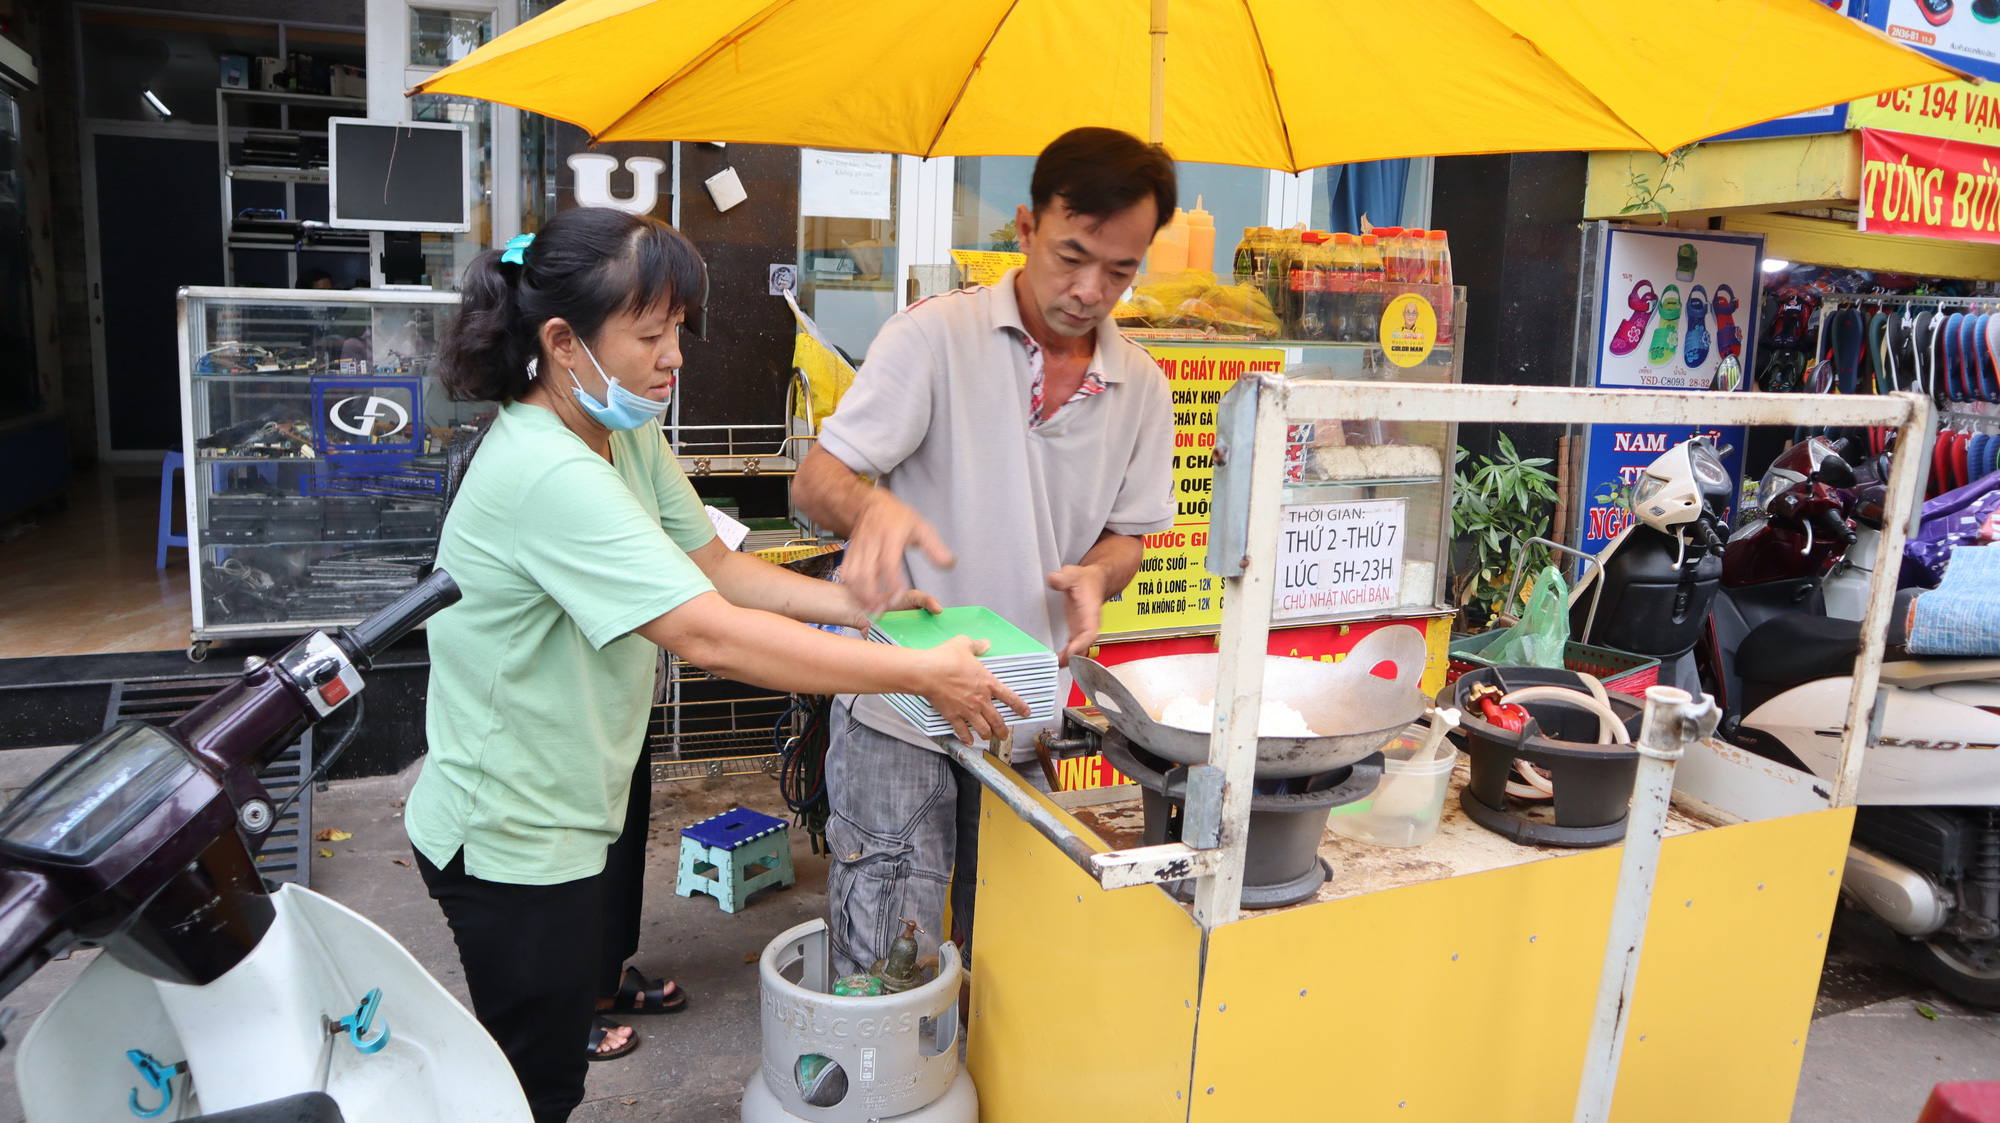 Deaf-mute couple runs street food stall in Saigon with smiles, sign language